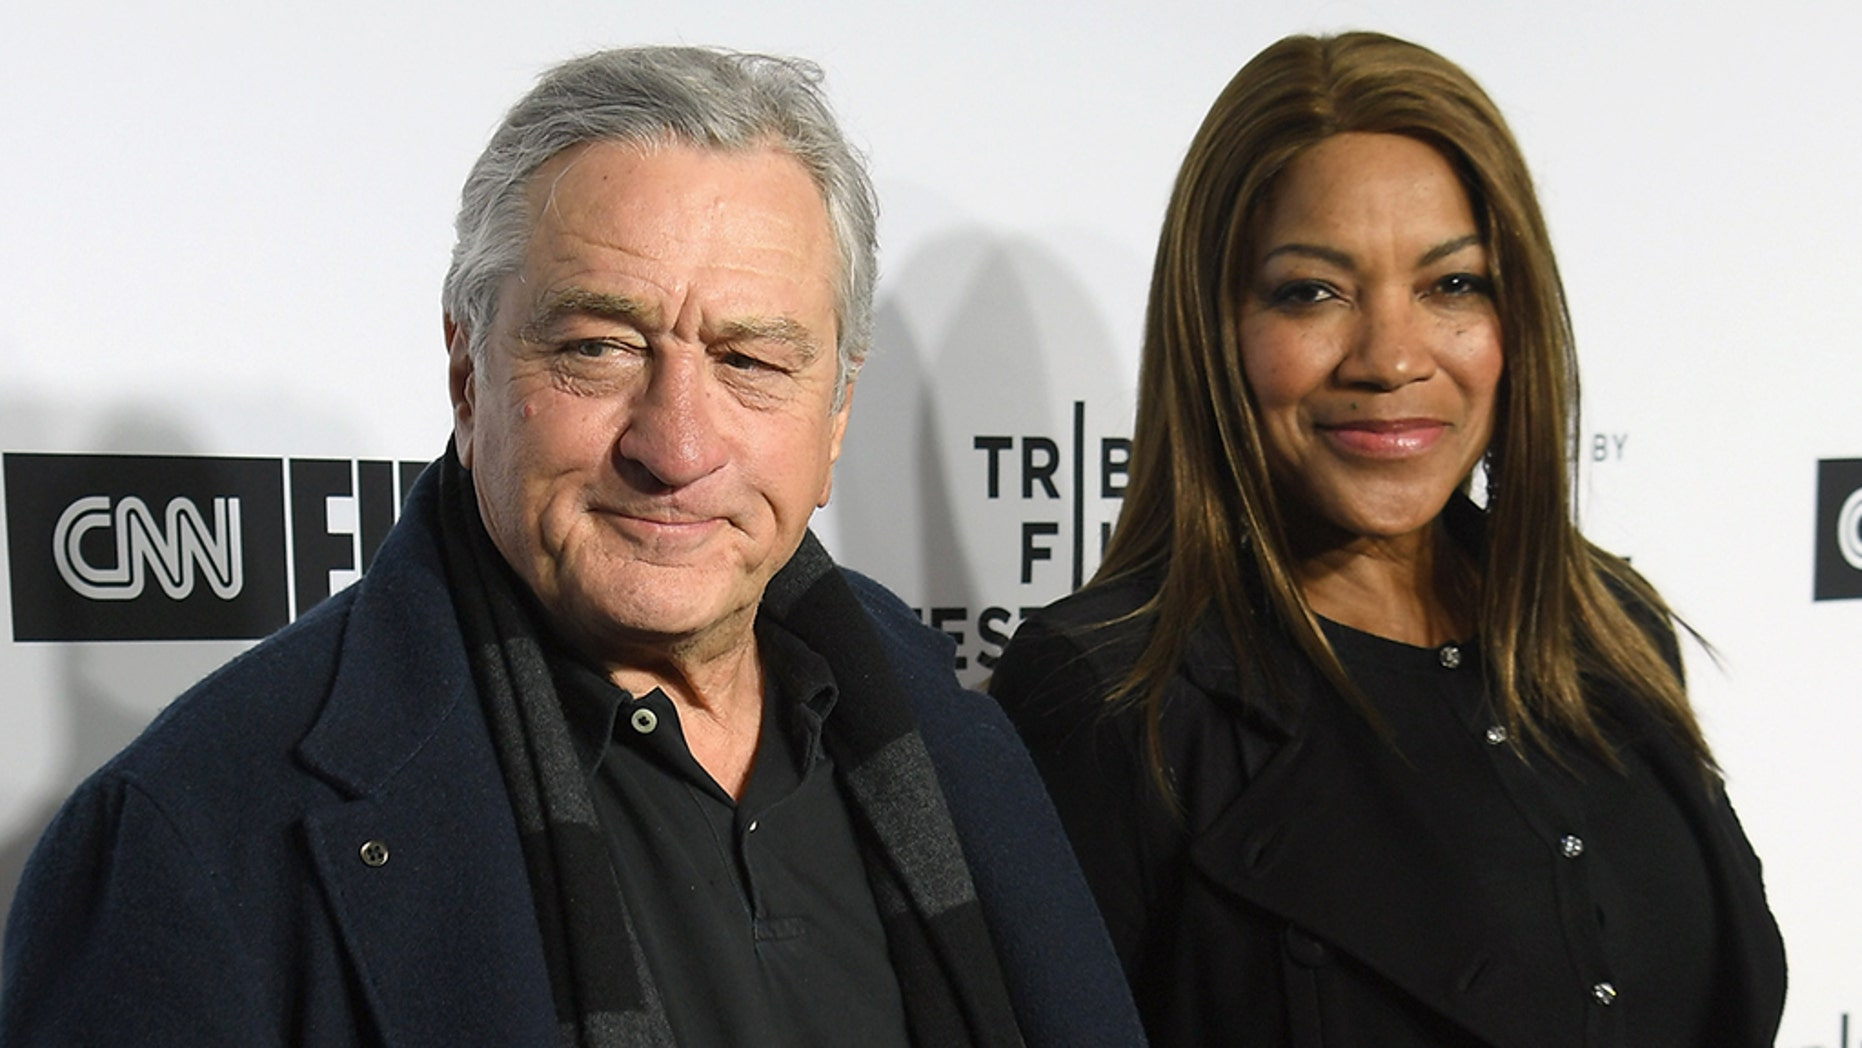 Robert De Niro and his wife, Grace Hightower, have separated after more than 20 years of marriage, according to multiple sources.